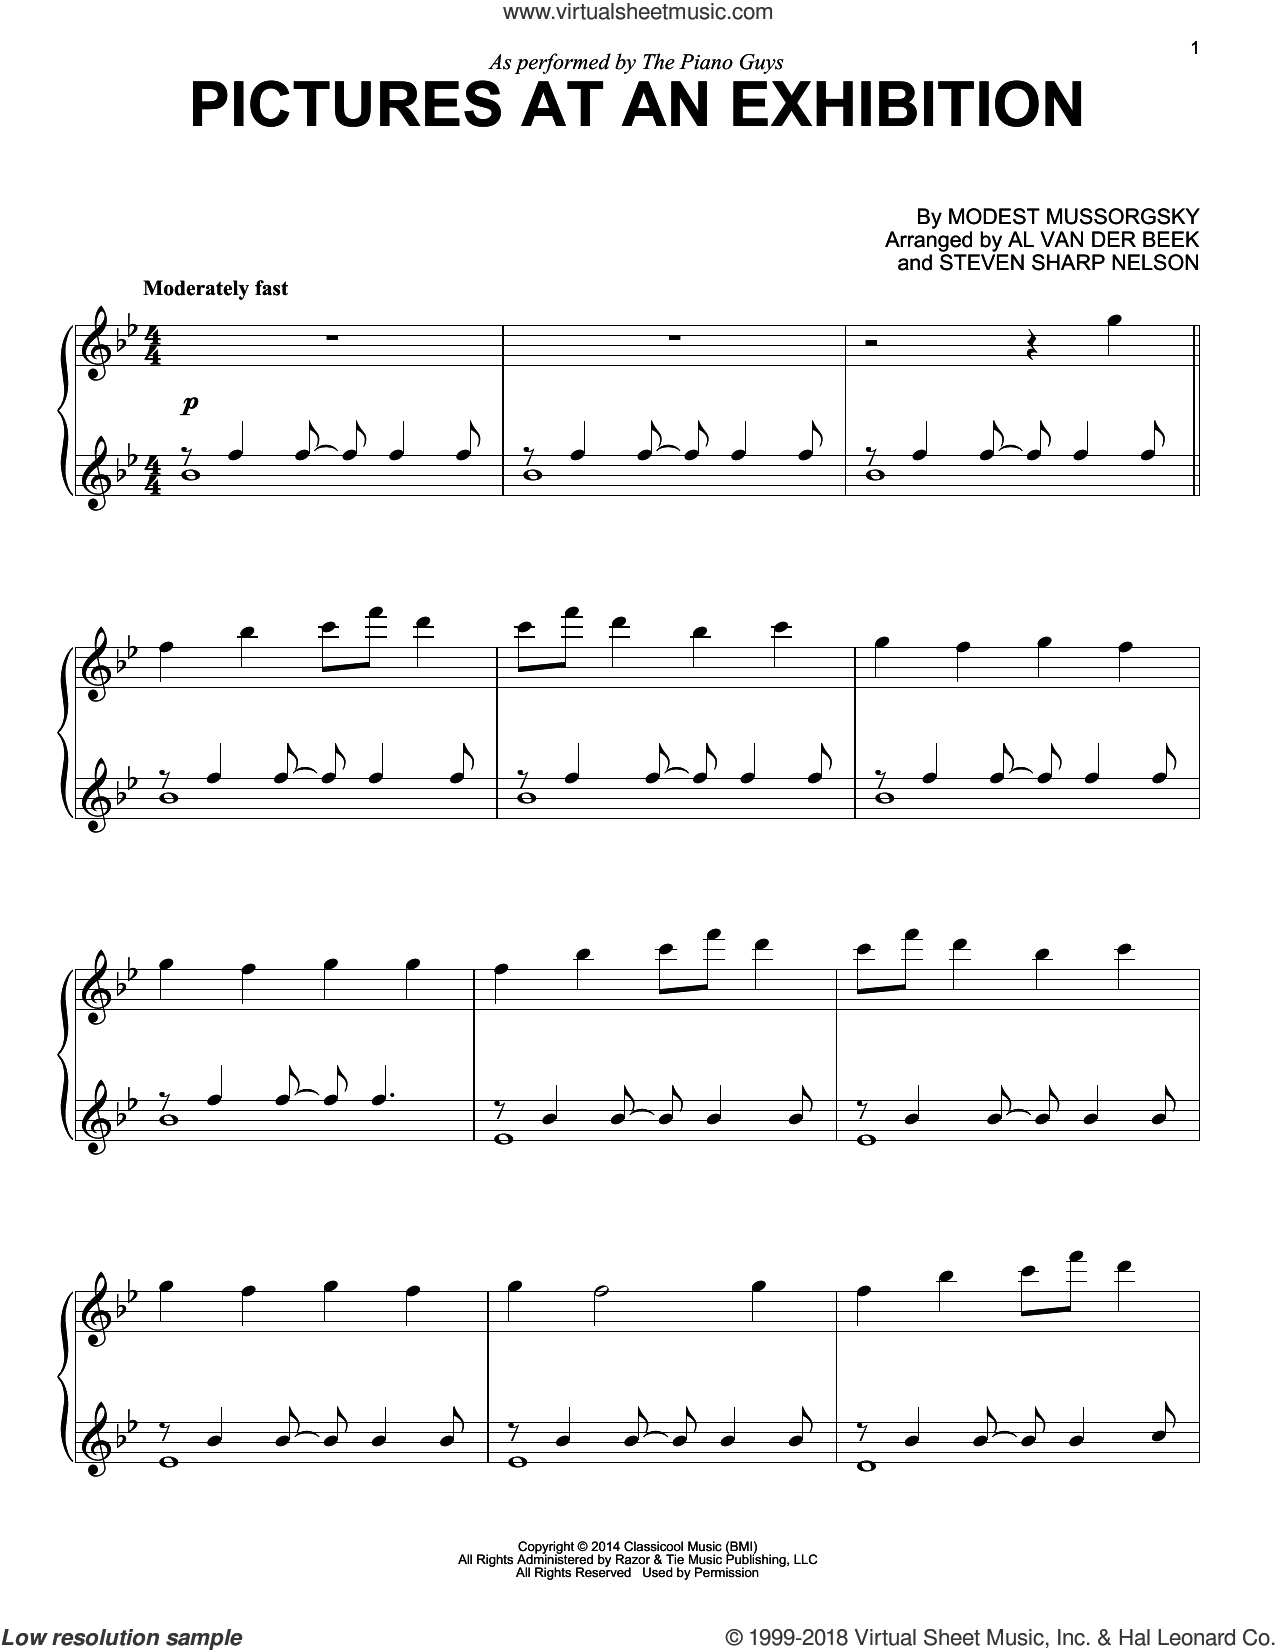 Pictures At An Exhibition sheet music for piano solo by The Piano Guys, Al van der Beek, Modest Petrovic Mussorgsky and Steven Sharp Nelson, intermediate skill level